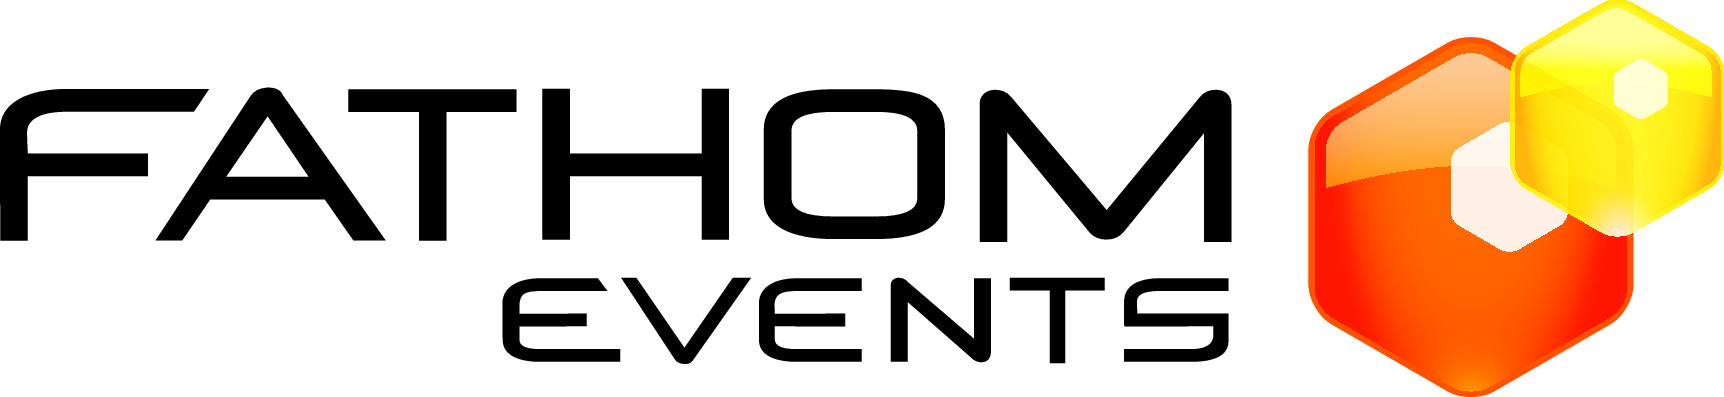 """Fathom Events is the leading event cinema distributor with theater locations in all top 100 DMAs® (Designated Market Areas) and ranks as one of the largest overall theater content distributors. Owned by AMC Entertainment Inc. (NYSE: AMC); Cinemark Holdings, Inc. (NYSE: CNK); and Regal, a subsidiary of the Cineworld Group (LSE: CINE.L), Fathom Events offers a variety of unique entertainment events in movie theaters such as live performances of the Metropolitan Opera, top Broadway stage productions, major sporting events, epic concerts, the yearlong TCM Big Screen Classics series, inspirational events and popular anime franchises. Fathom Events takes audiences behind the scenes for unique extras including audience Q&As, backstage footage and interviews with cast and crew, creating the ultimate VIP experience. Fathom Events' live Digital Broadcast Network (""""DBN"""") is the largest cinema broadcast network in North America, bringing live and pre-recorded events to 975 locations and 1,578 screens in 181 DMAs. The company also provides corporations a compelling national footprint for hosting employee meetings, customer rewards events and new product launches. For more information, visit  www.FathomEvents.com ."""